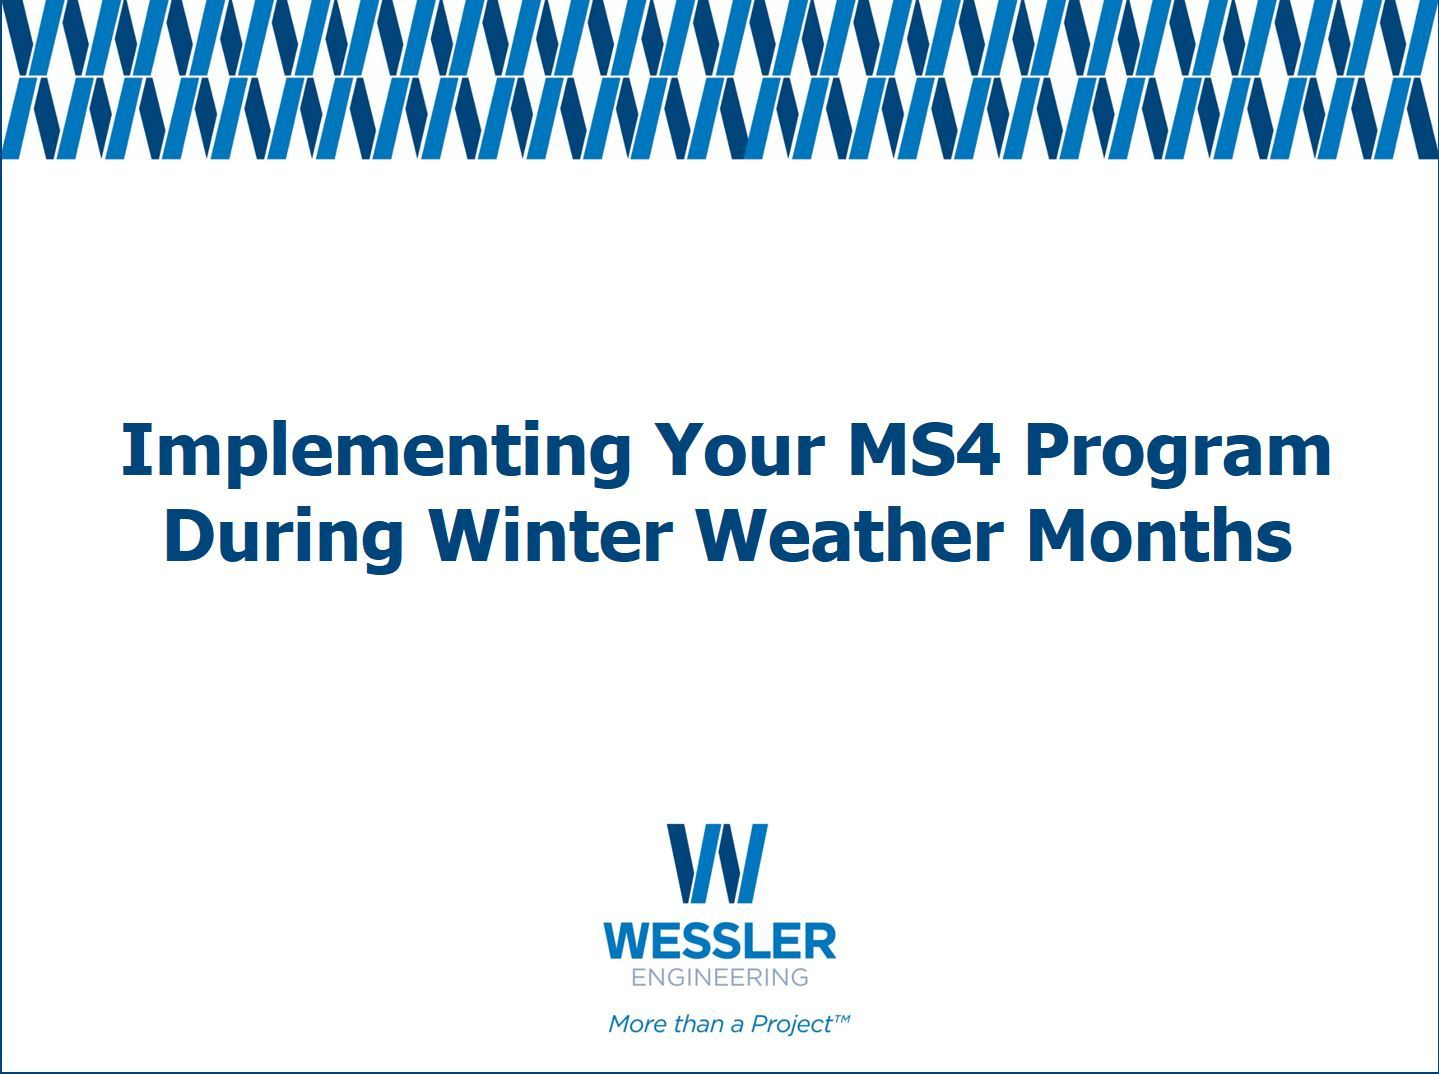 Implementing Your MS4 Program During Winter Weather Months